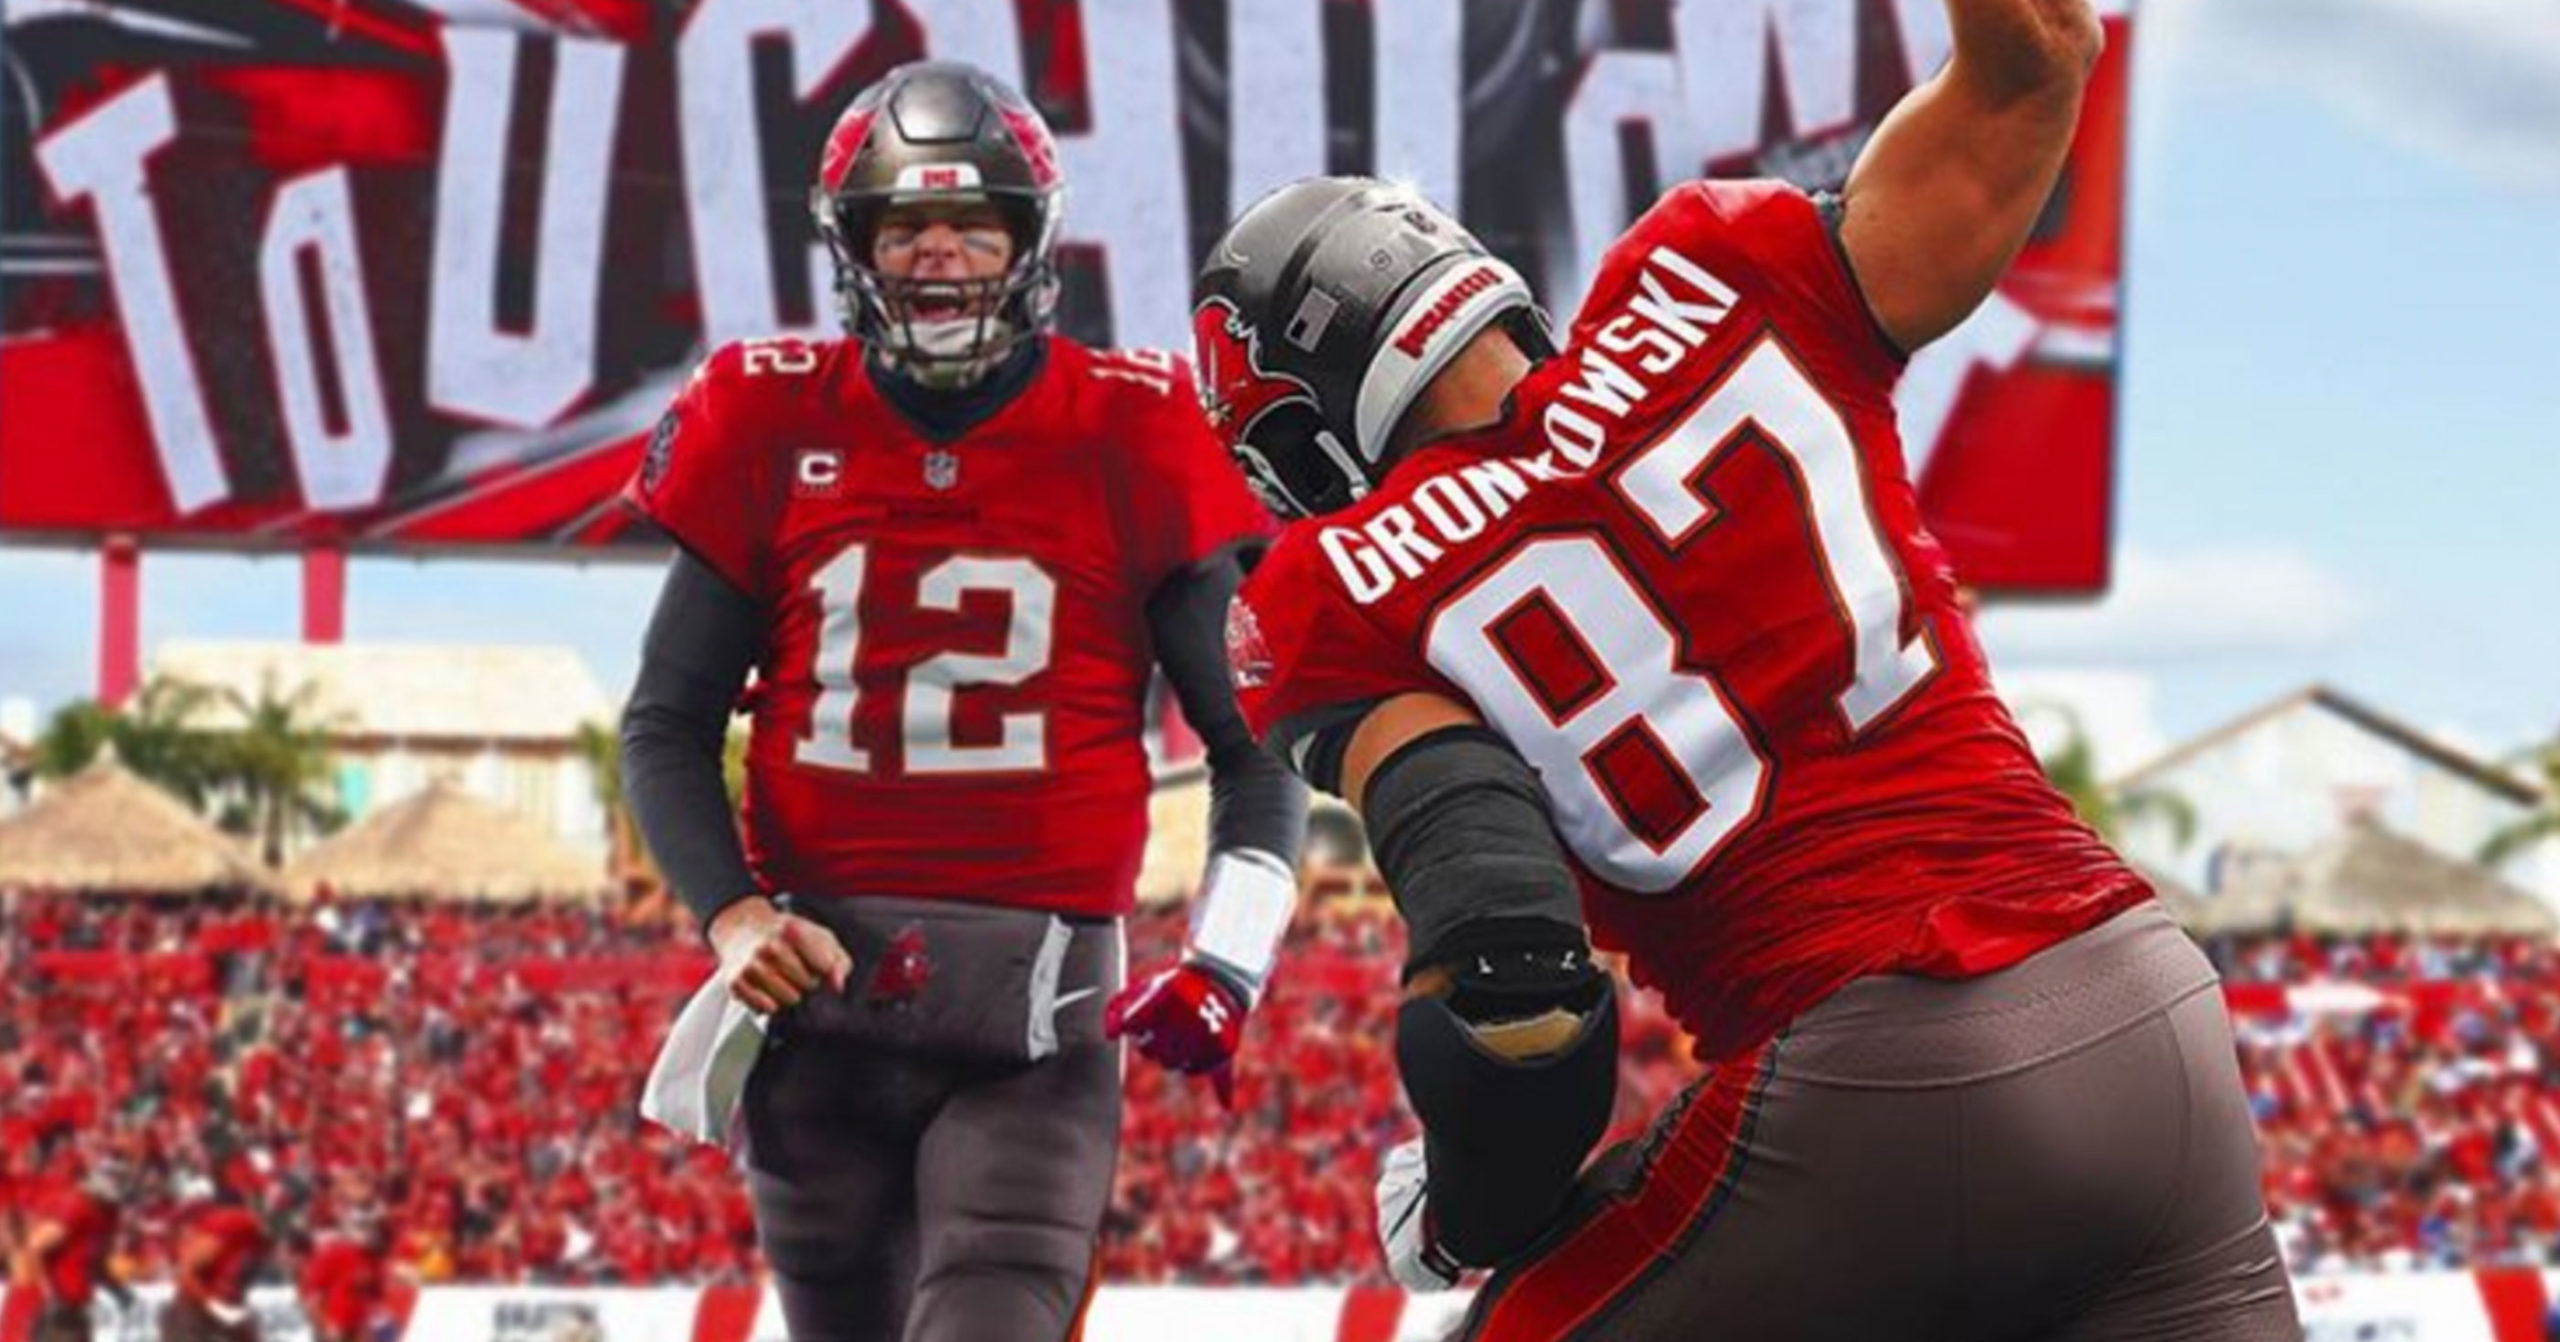 Tampa Bay Buccaneers: Positives From Bringing in Brady and Gronkowski - NGSC Sports We Never Stop